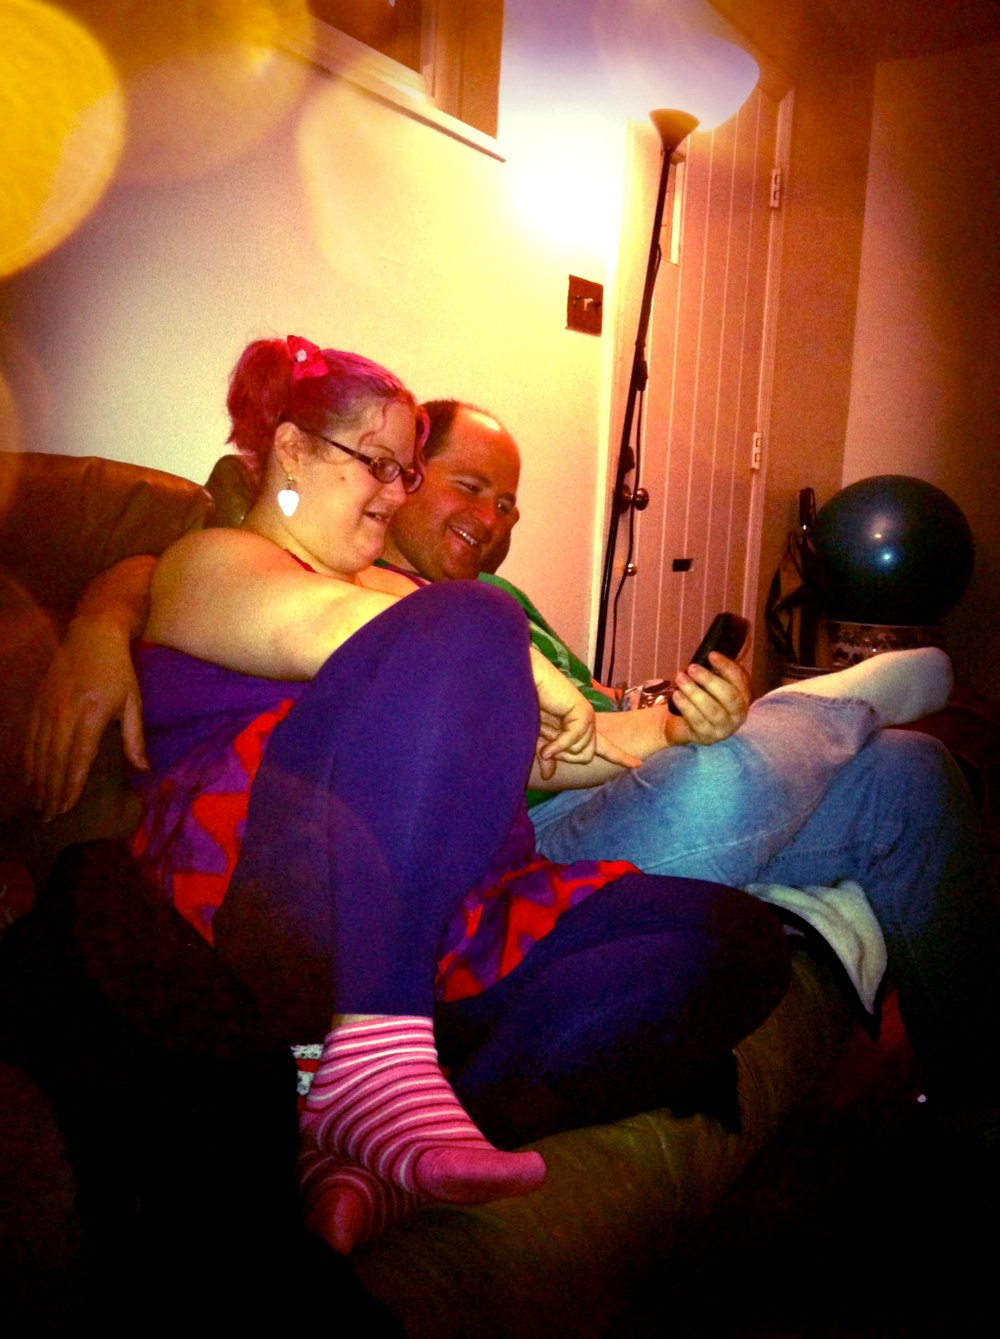 Andrea and I sharing a cuddle, and laughing together, back in 2010